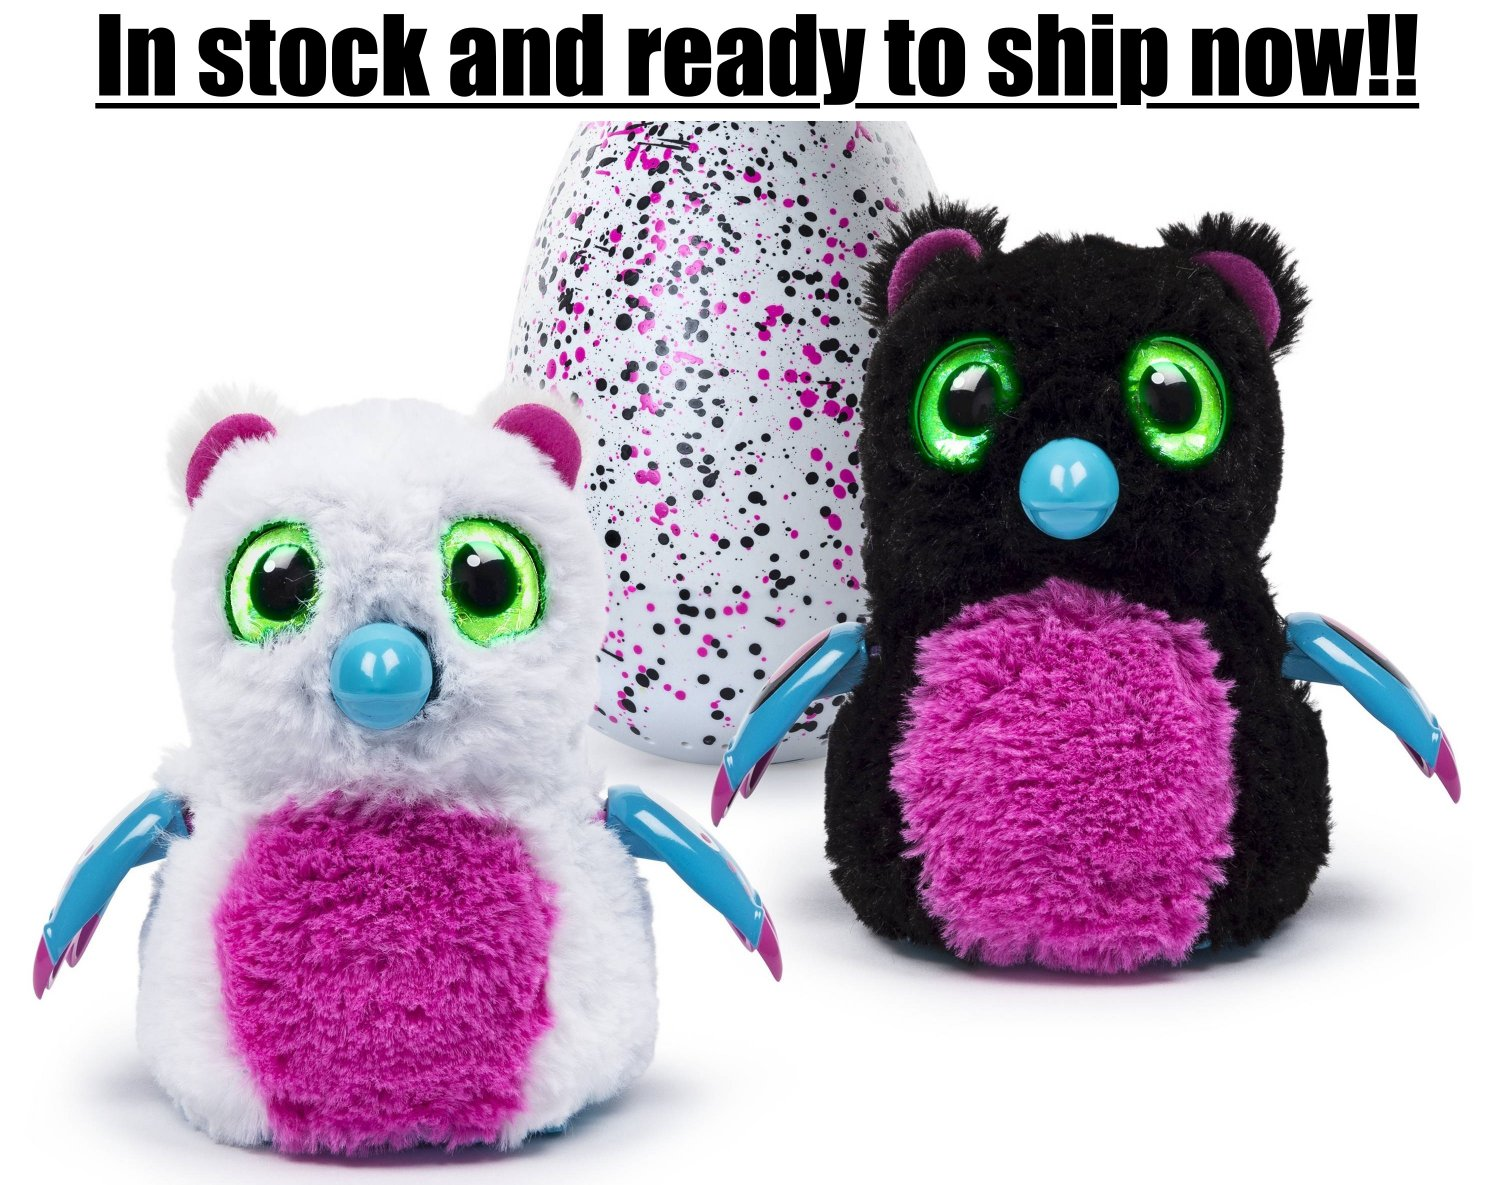 Hatchimals Bearakeet Pink & Black Egg- In stock and New in box!